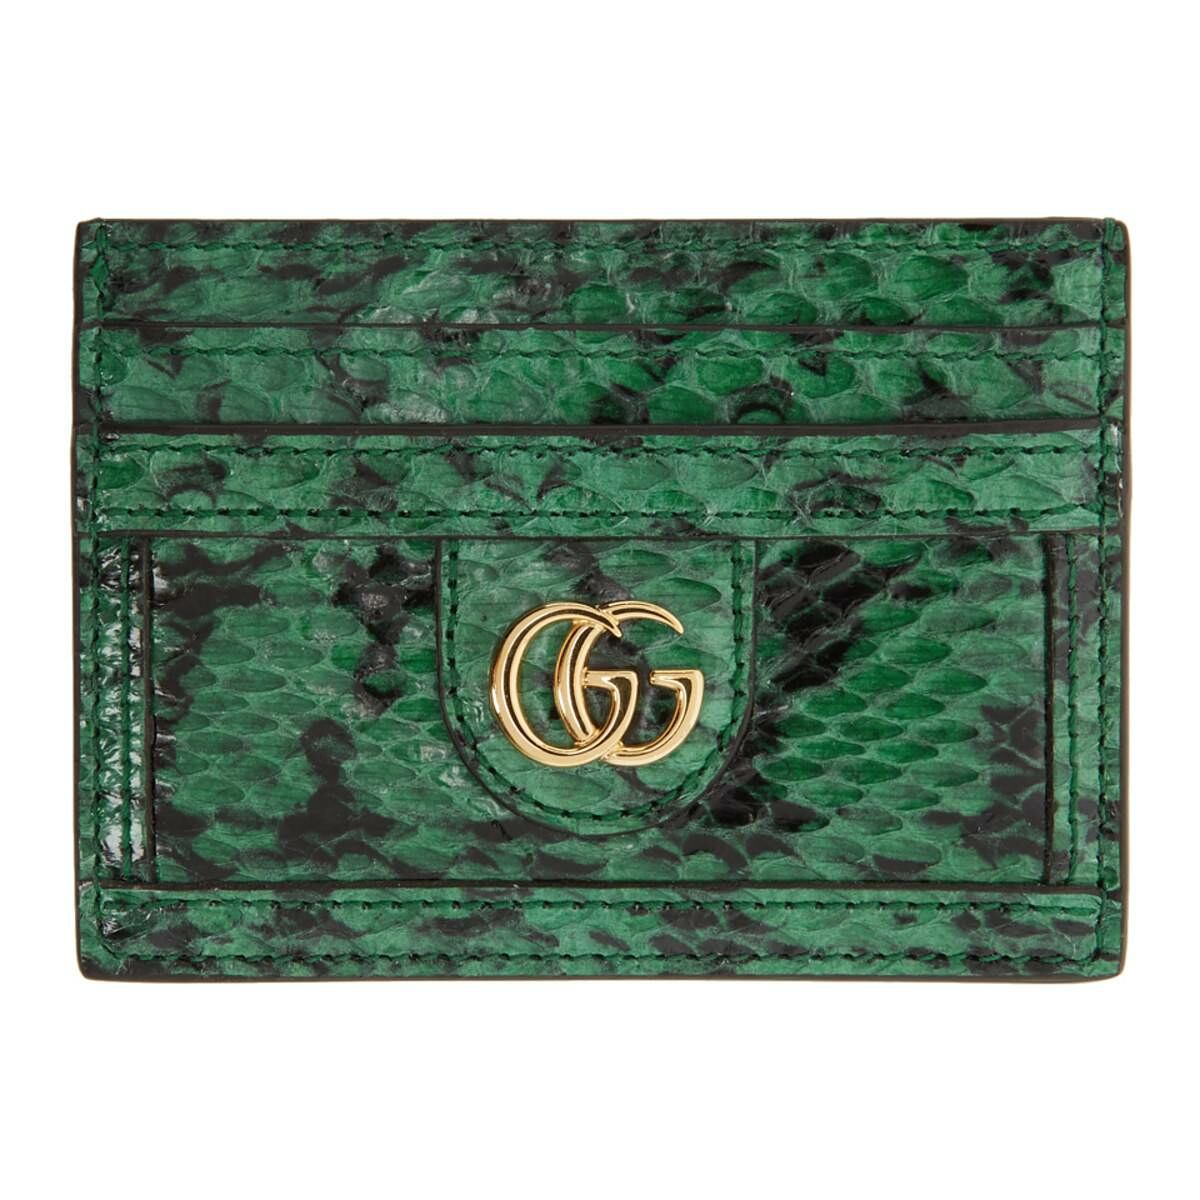 Gucci Green and Black GG Ophidia Viper Card Holder Ssense USA WOMEN Women ACCESSORIES Womens WALLETS